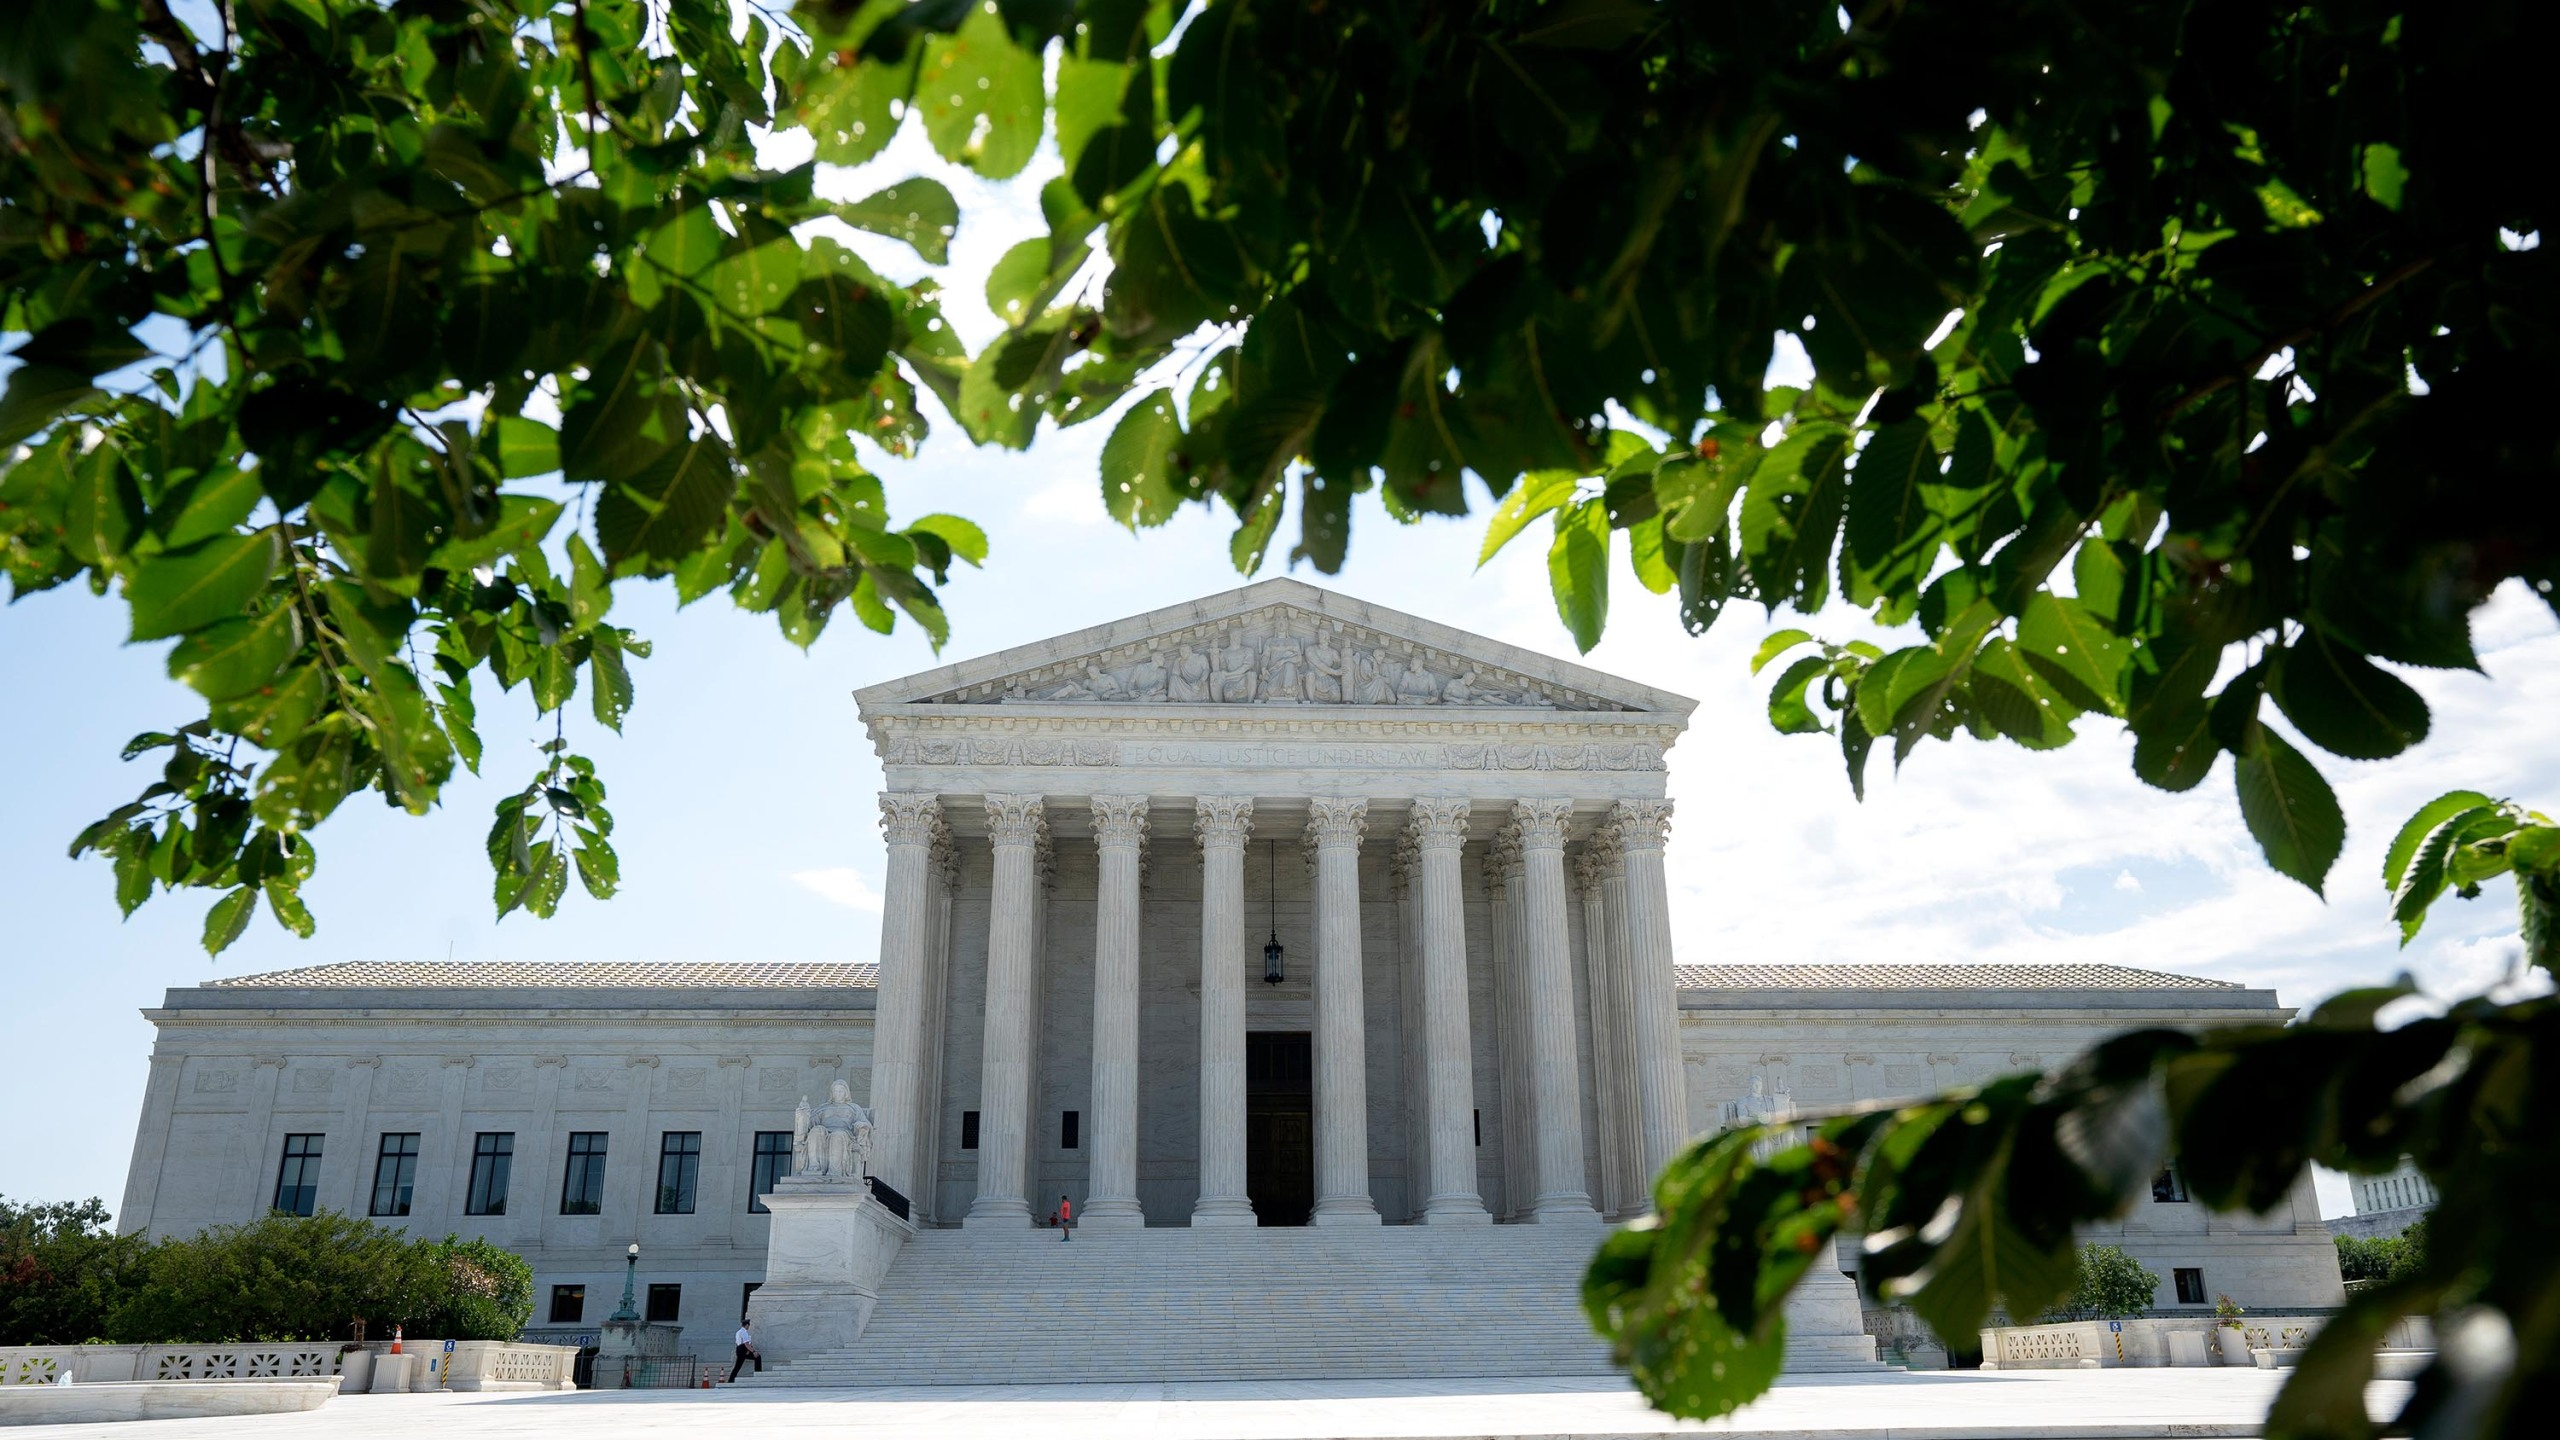 A general view of the U.S. Supreme Court on June 30, 2020, in Washington, DC. (Stefani Reynolds/Getty Images)